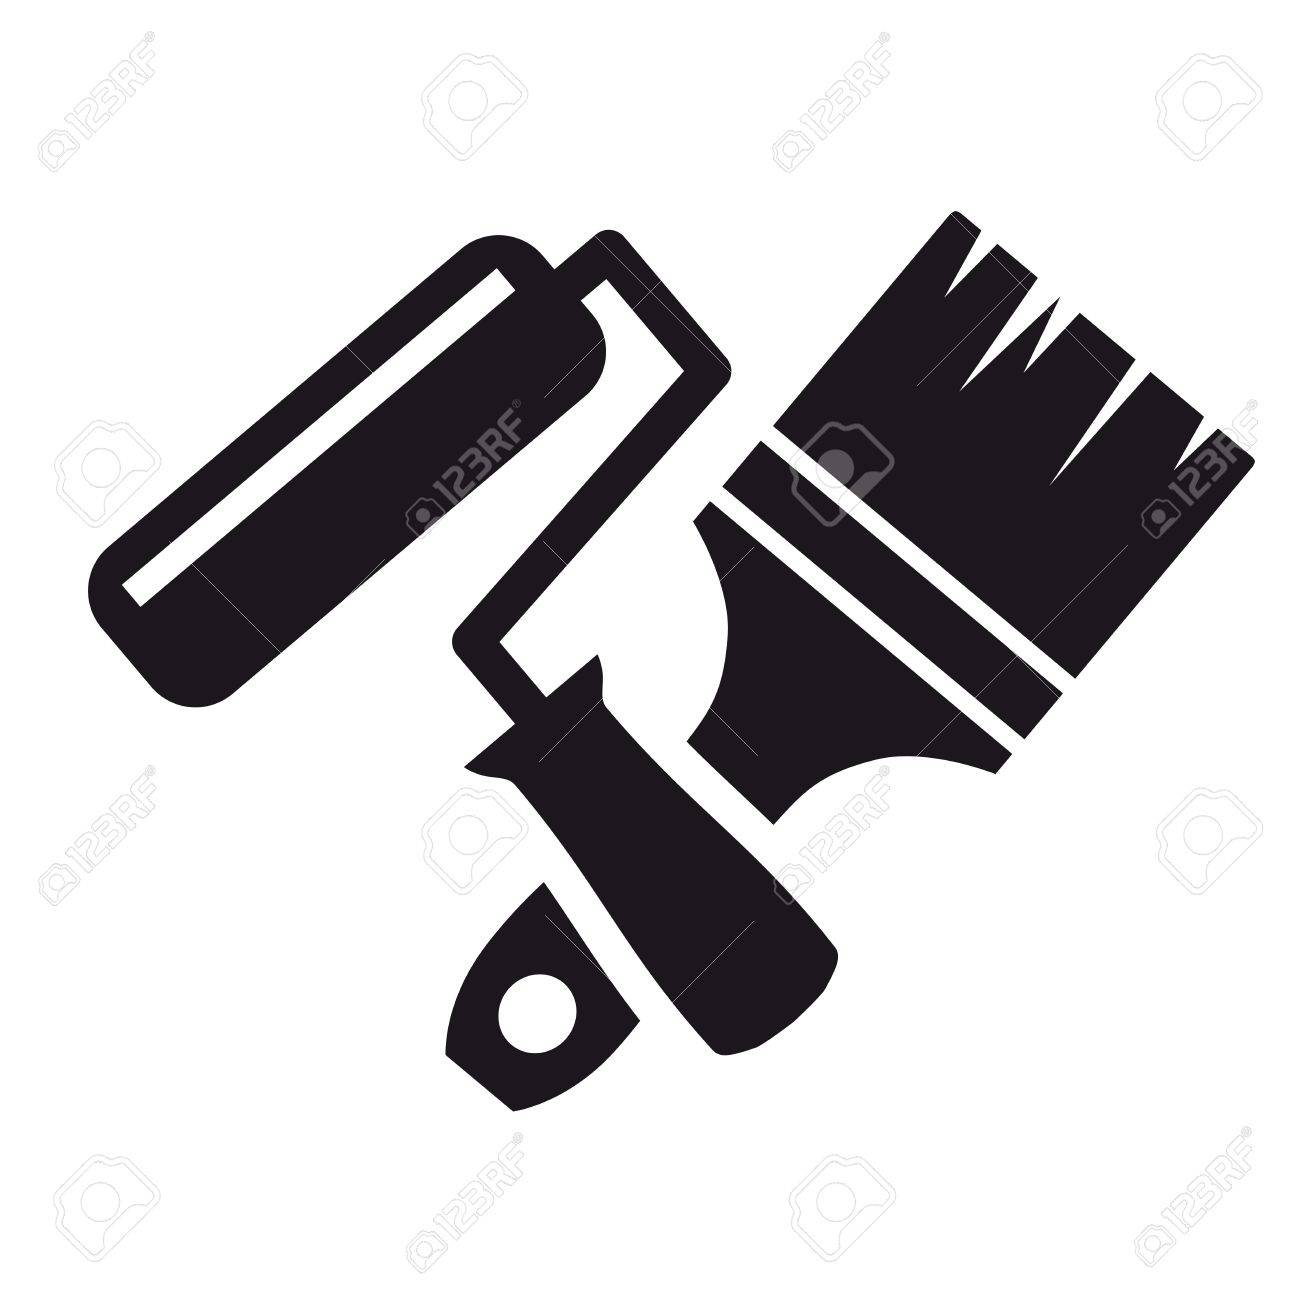 Paint brush and roller clipart black and white image free stock Paint Roller Clipart Black And White image free stock